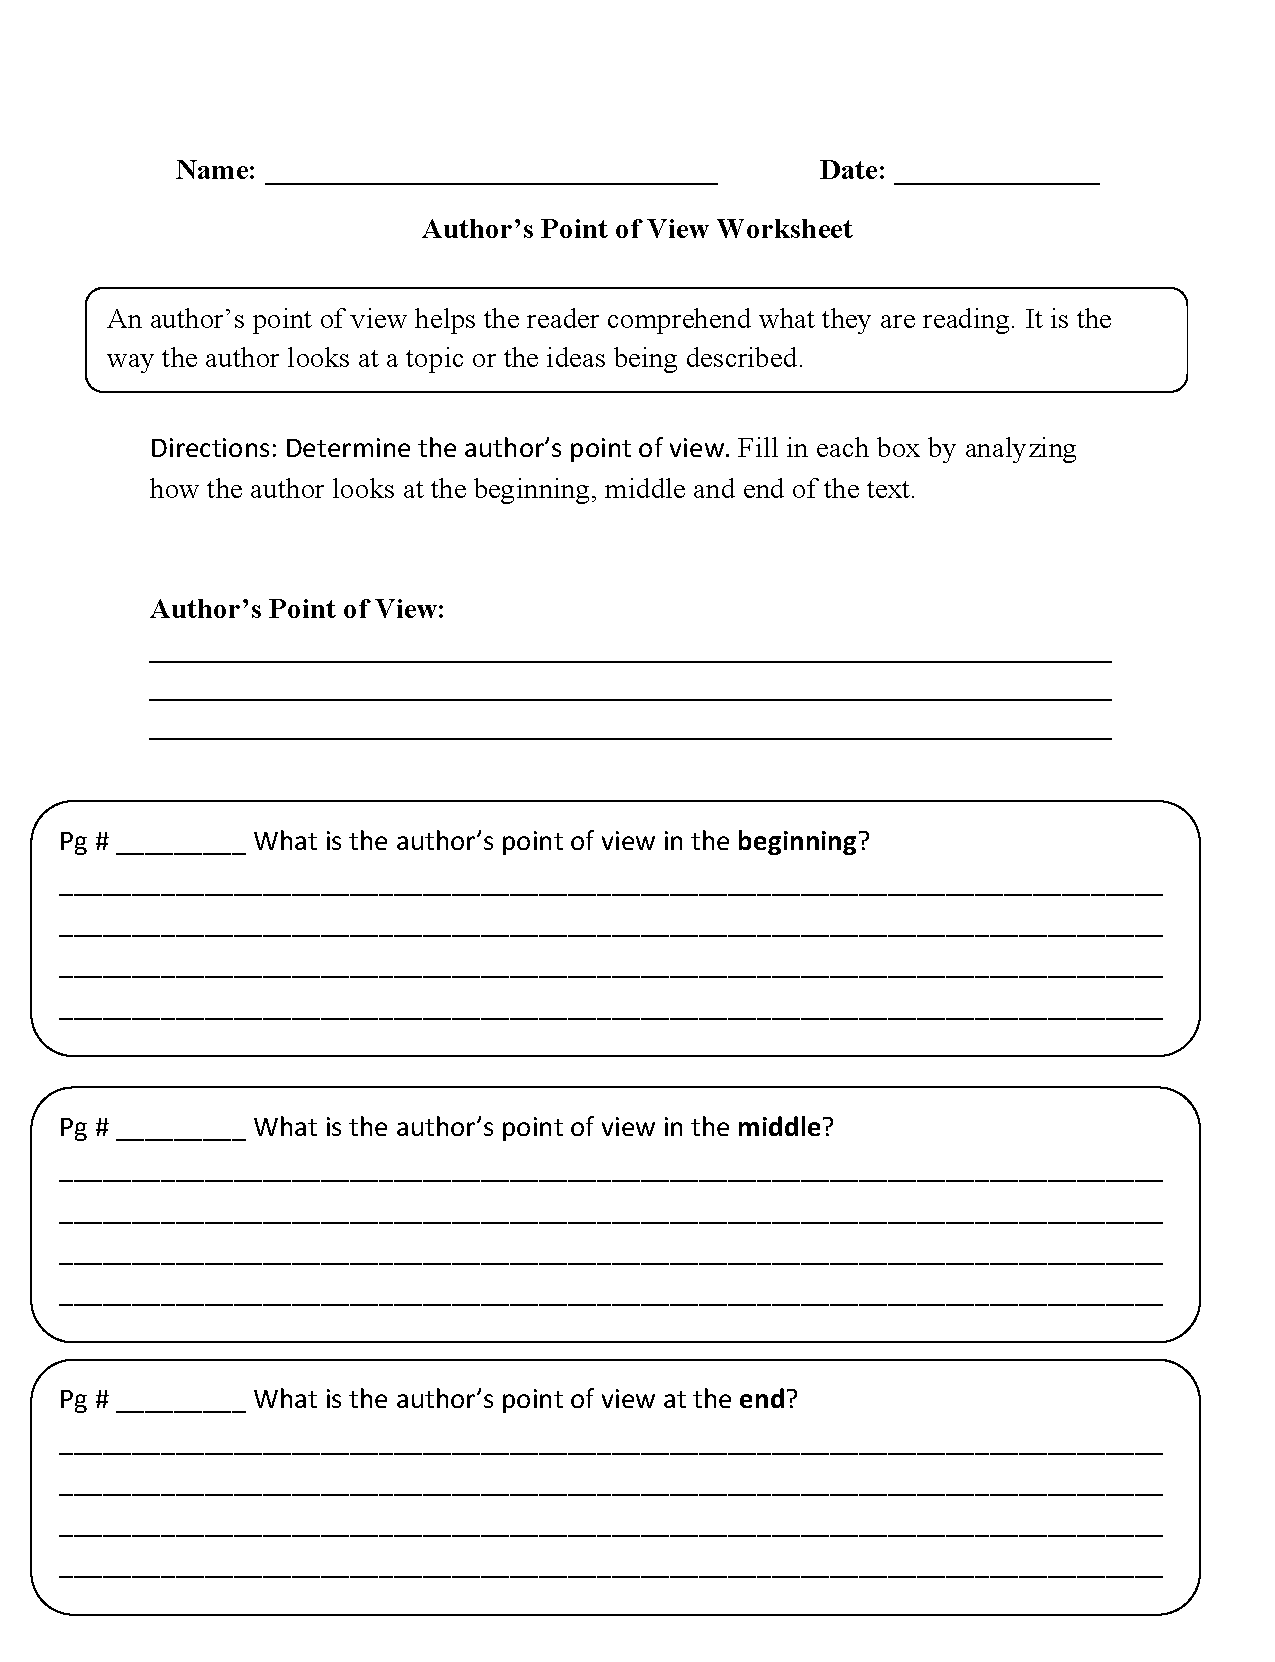 Weirdmailus  Pleasing Englishlinxcom  Point Of View Worksheets With Magnificent Point Of View Worksheets With Astonishing Adverbial Clauses Worksheets Also Noun Printable Worksheets In Addition Simple Number Worksheets And Carroll Diagrams Worksheets As Well As Changing A Mixed Number To An Improper Fraction Worksheet Additionally Grade One Worksheets Free Printable From Englishlinxcom With Weirdmailus  Magnificent Englishlinxcom  Point Of View Worksheets With Astonishing Point Of View Worksheets And Pleasing Adverbial Clauses Worksheets Also Noun Printable Worksheets In Addition Simple Number Worksheets From Englishlinxcom